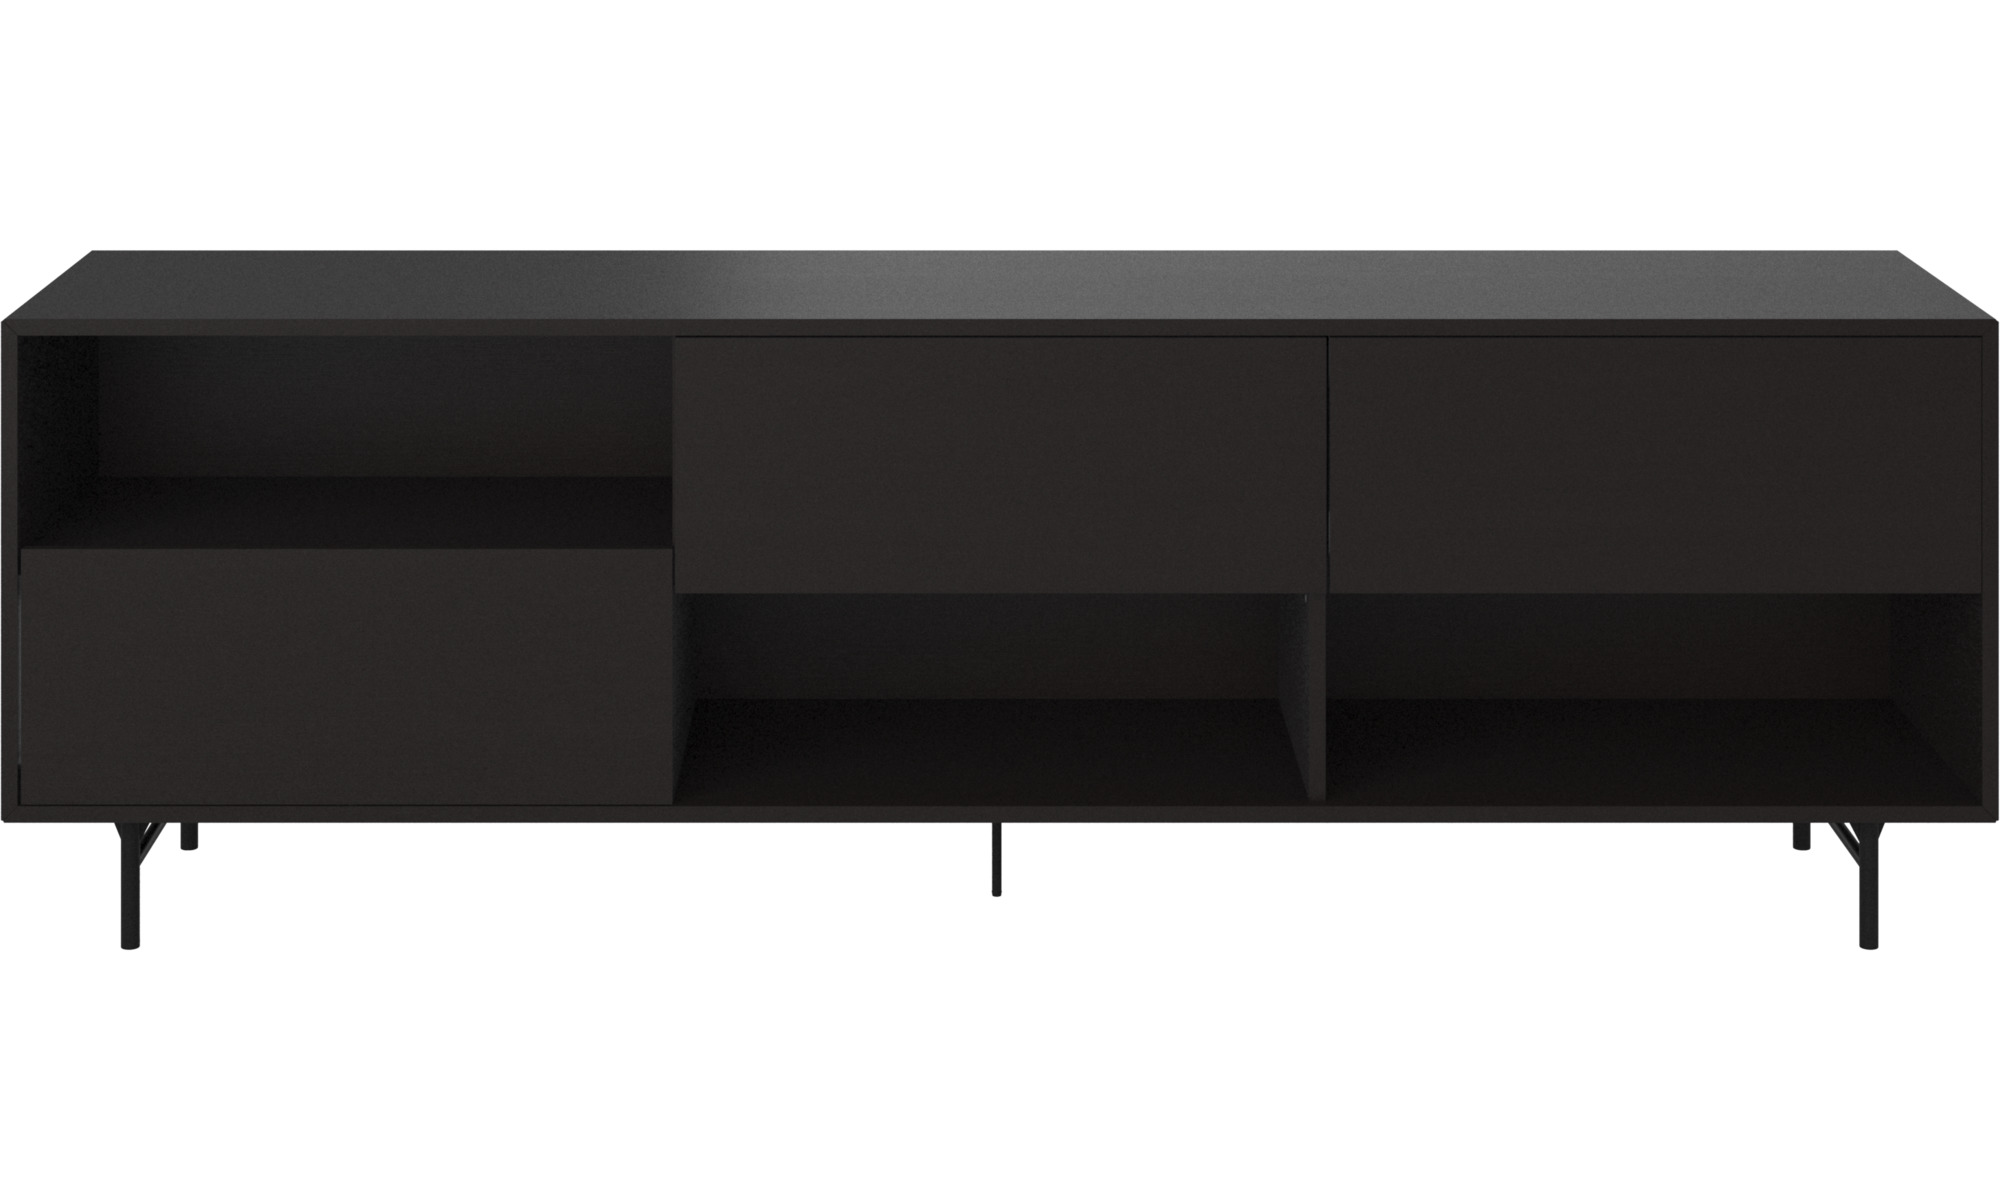 Sideboards - Manhattan sideboard - Black - Lacquered